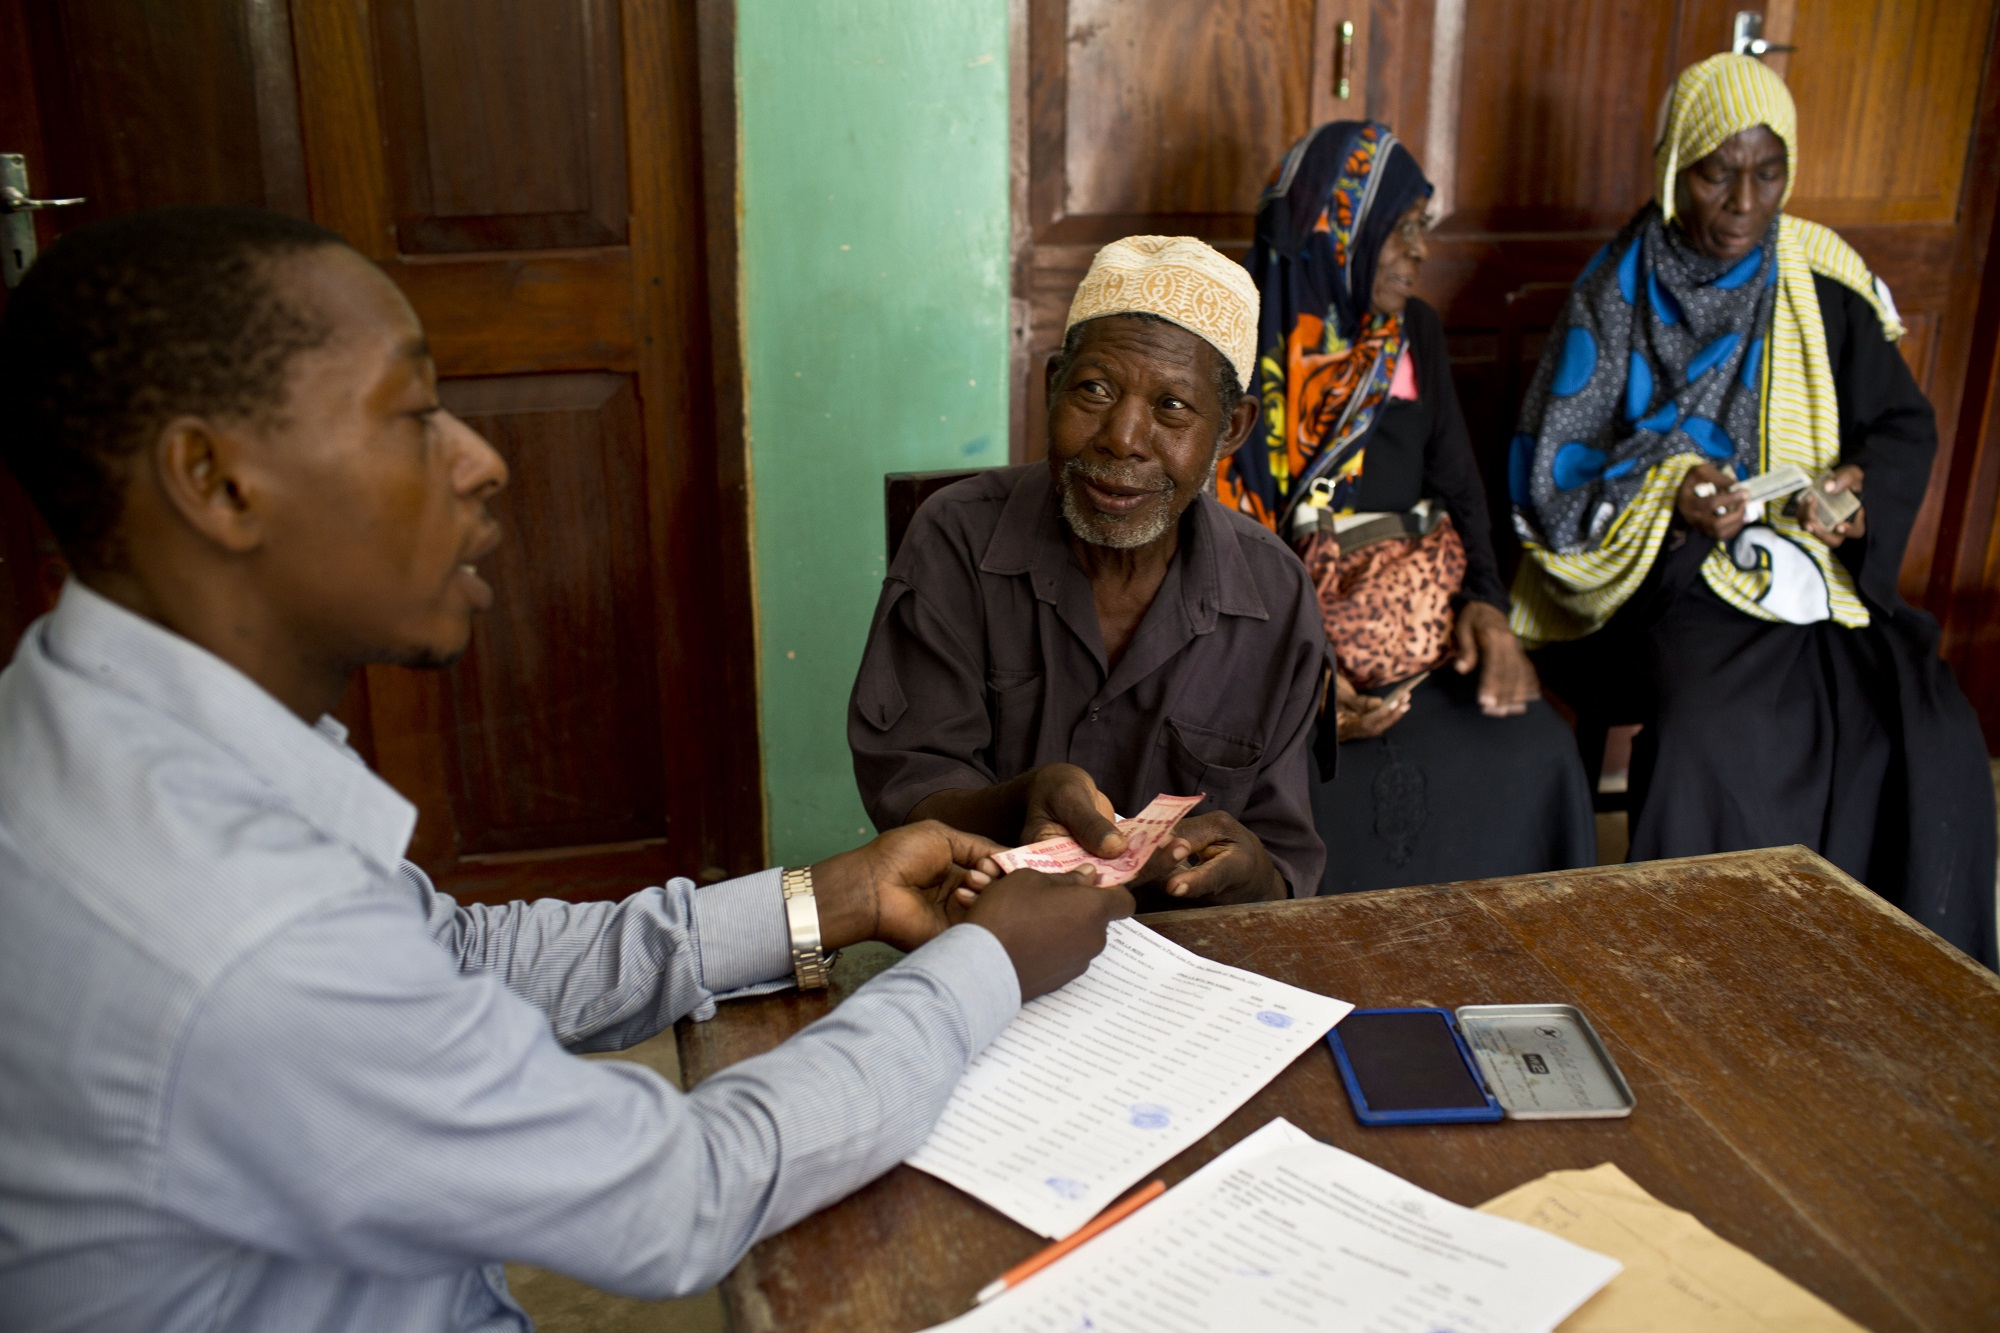 An older man collects a cash transfer in Tanzania (c) Kate Holt/Age International